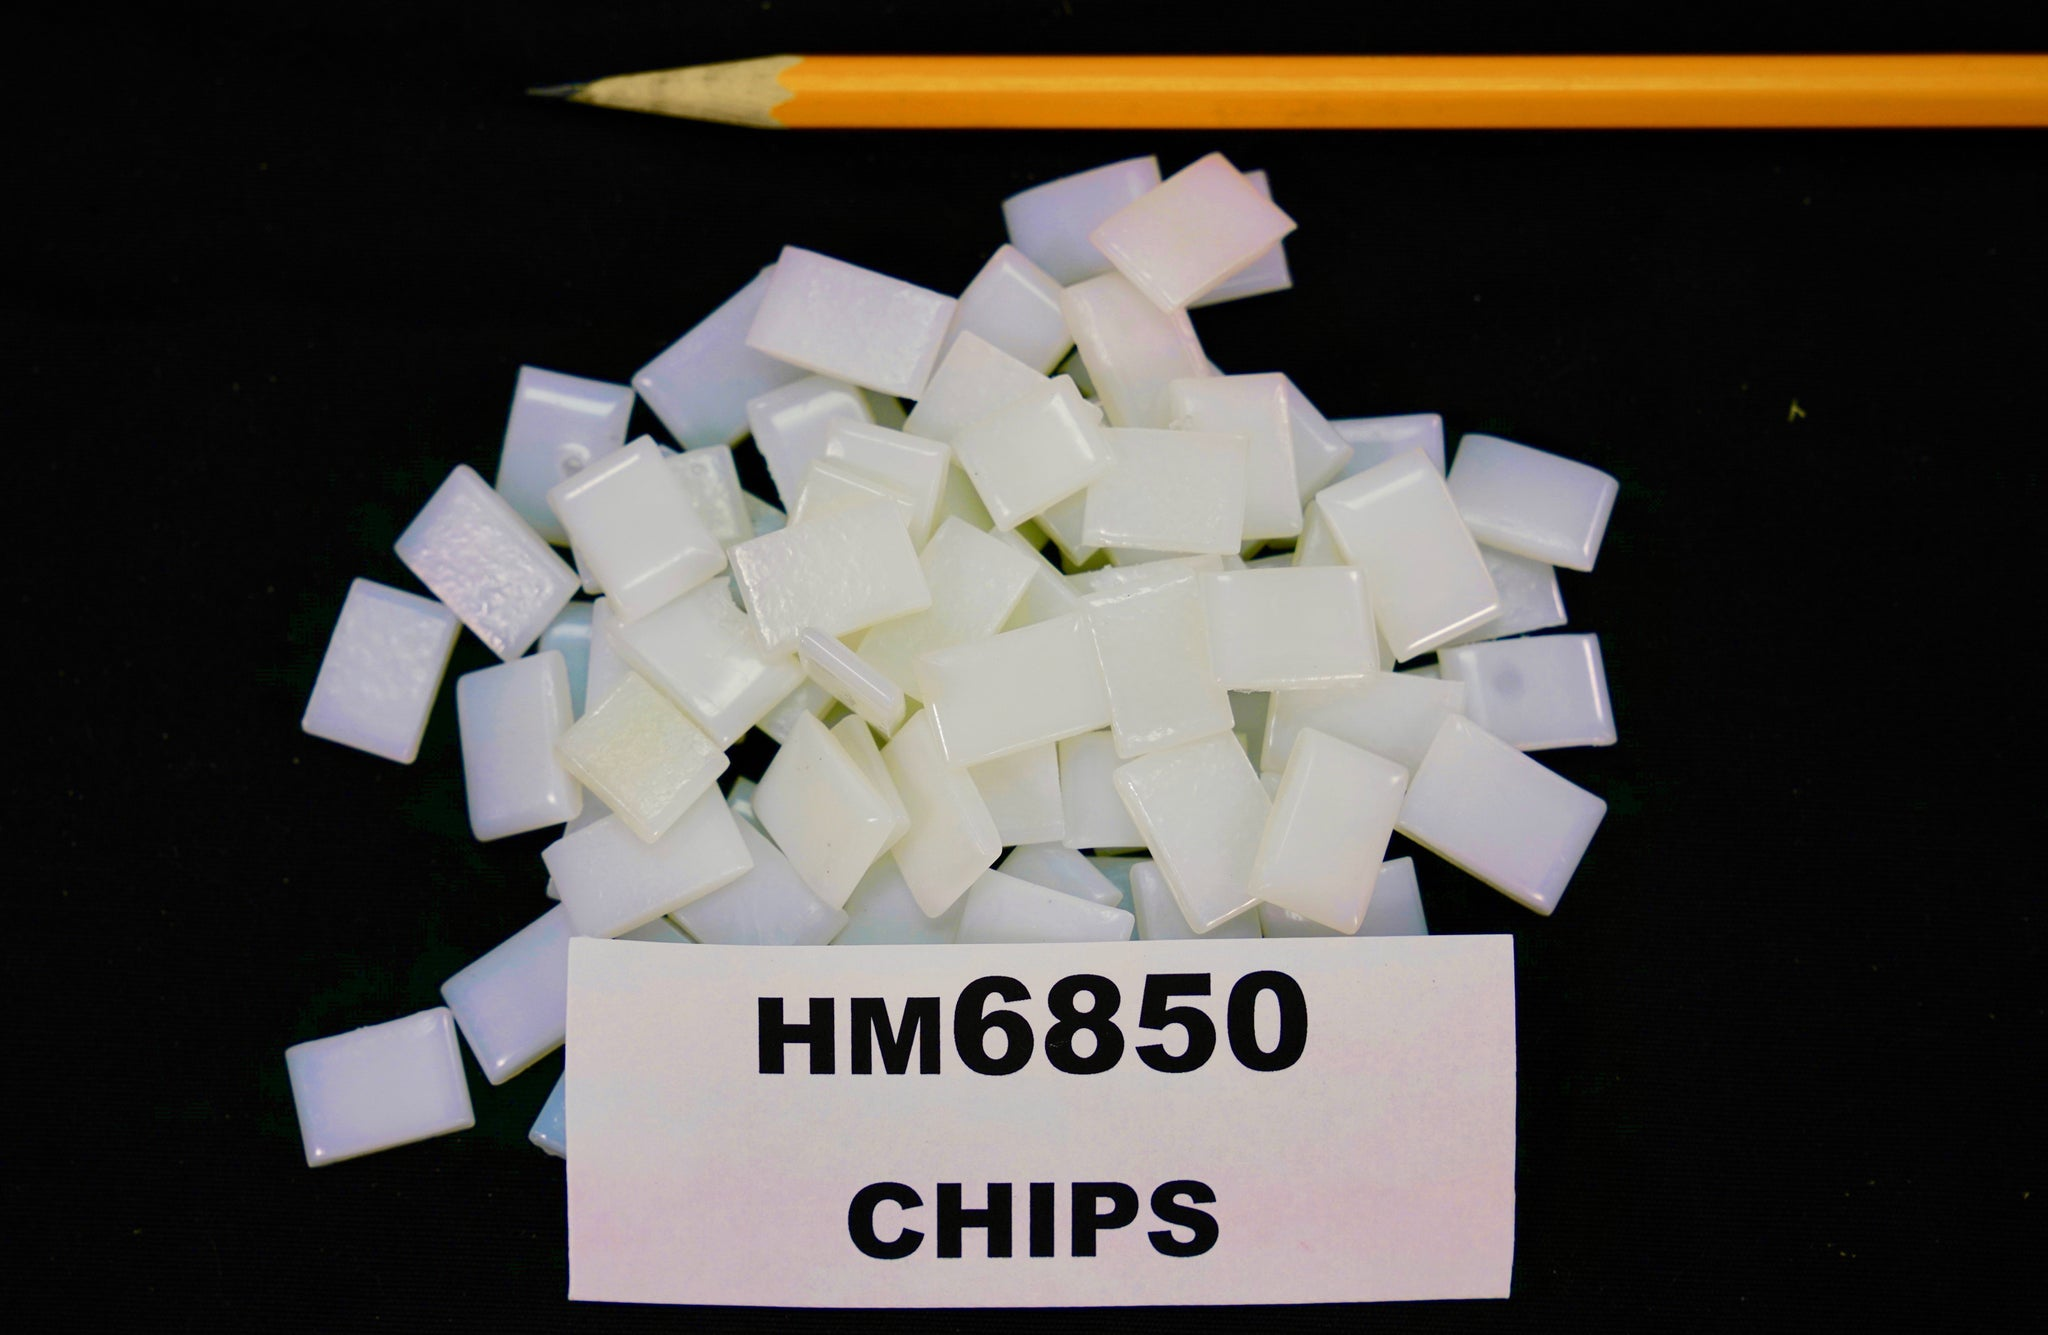 For Books & Spine Gluing - Bookbinding Hot Melt Glue Chips - HM6850